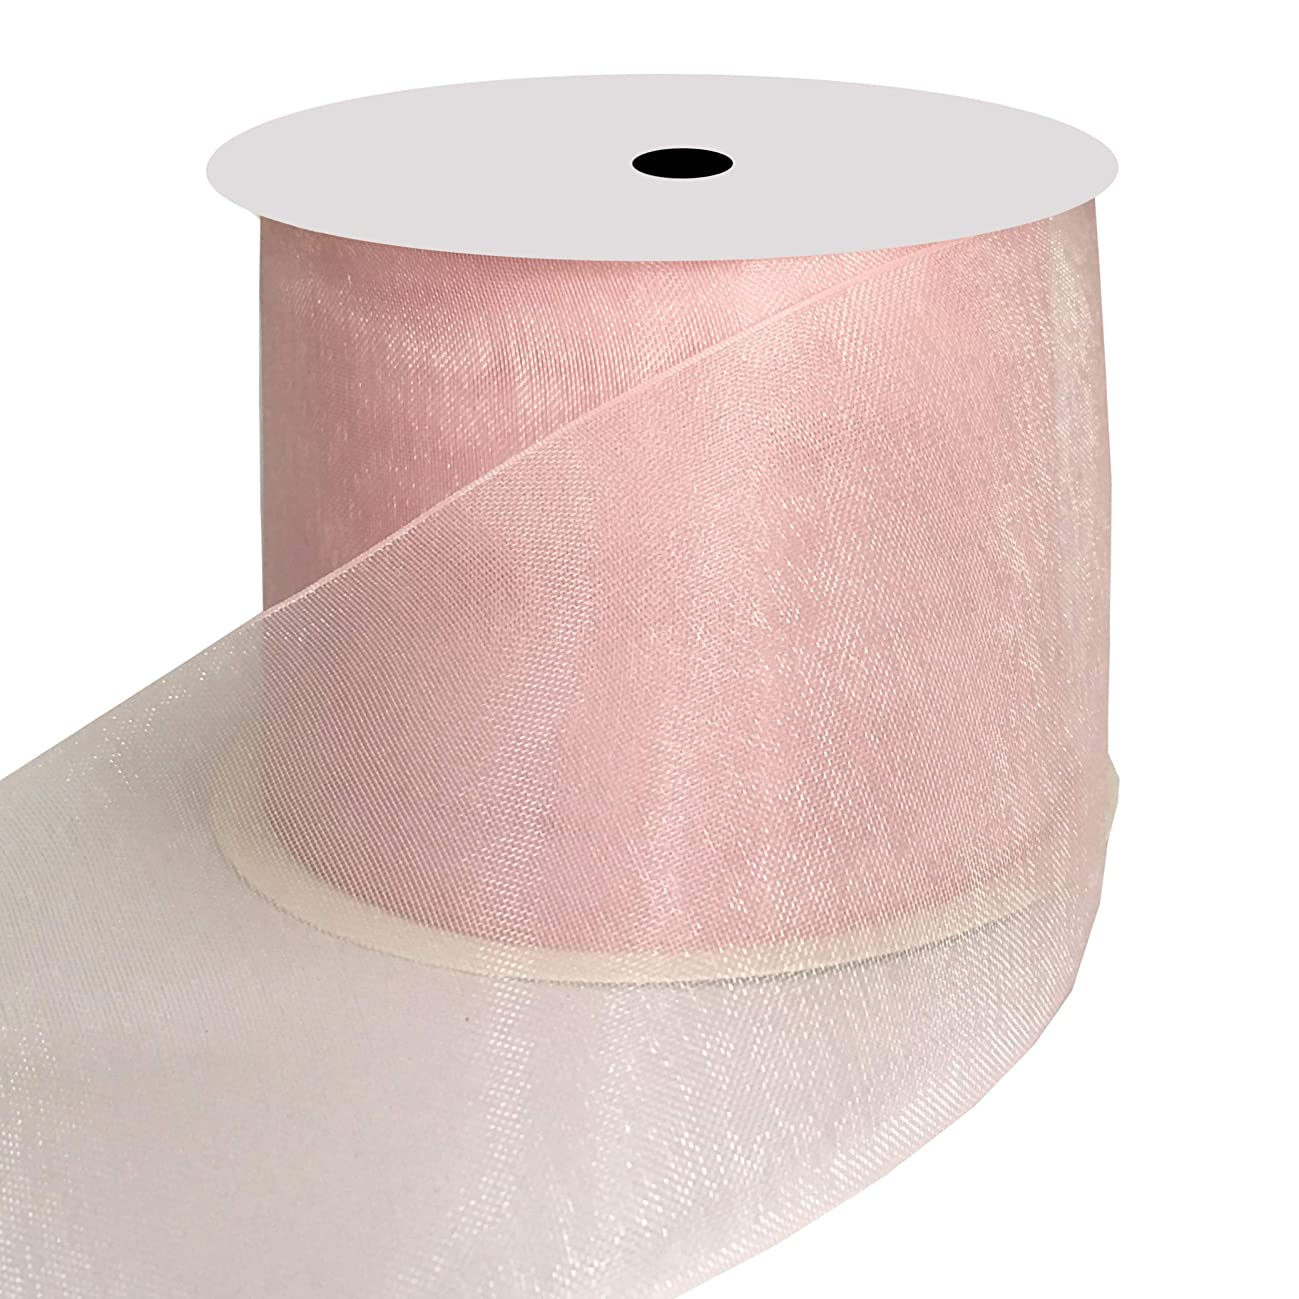 DUOQU 2 inch Wide Shimmer Sheer Organza Ribbon 20 Yards Pearl Pink